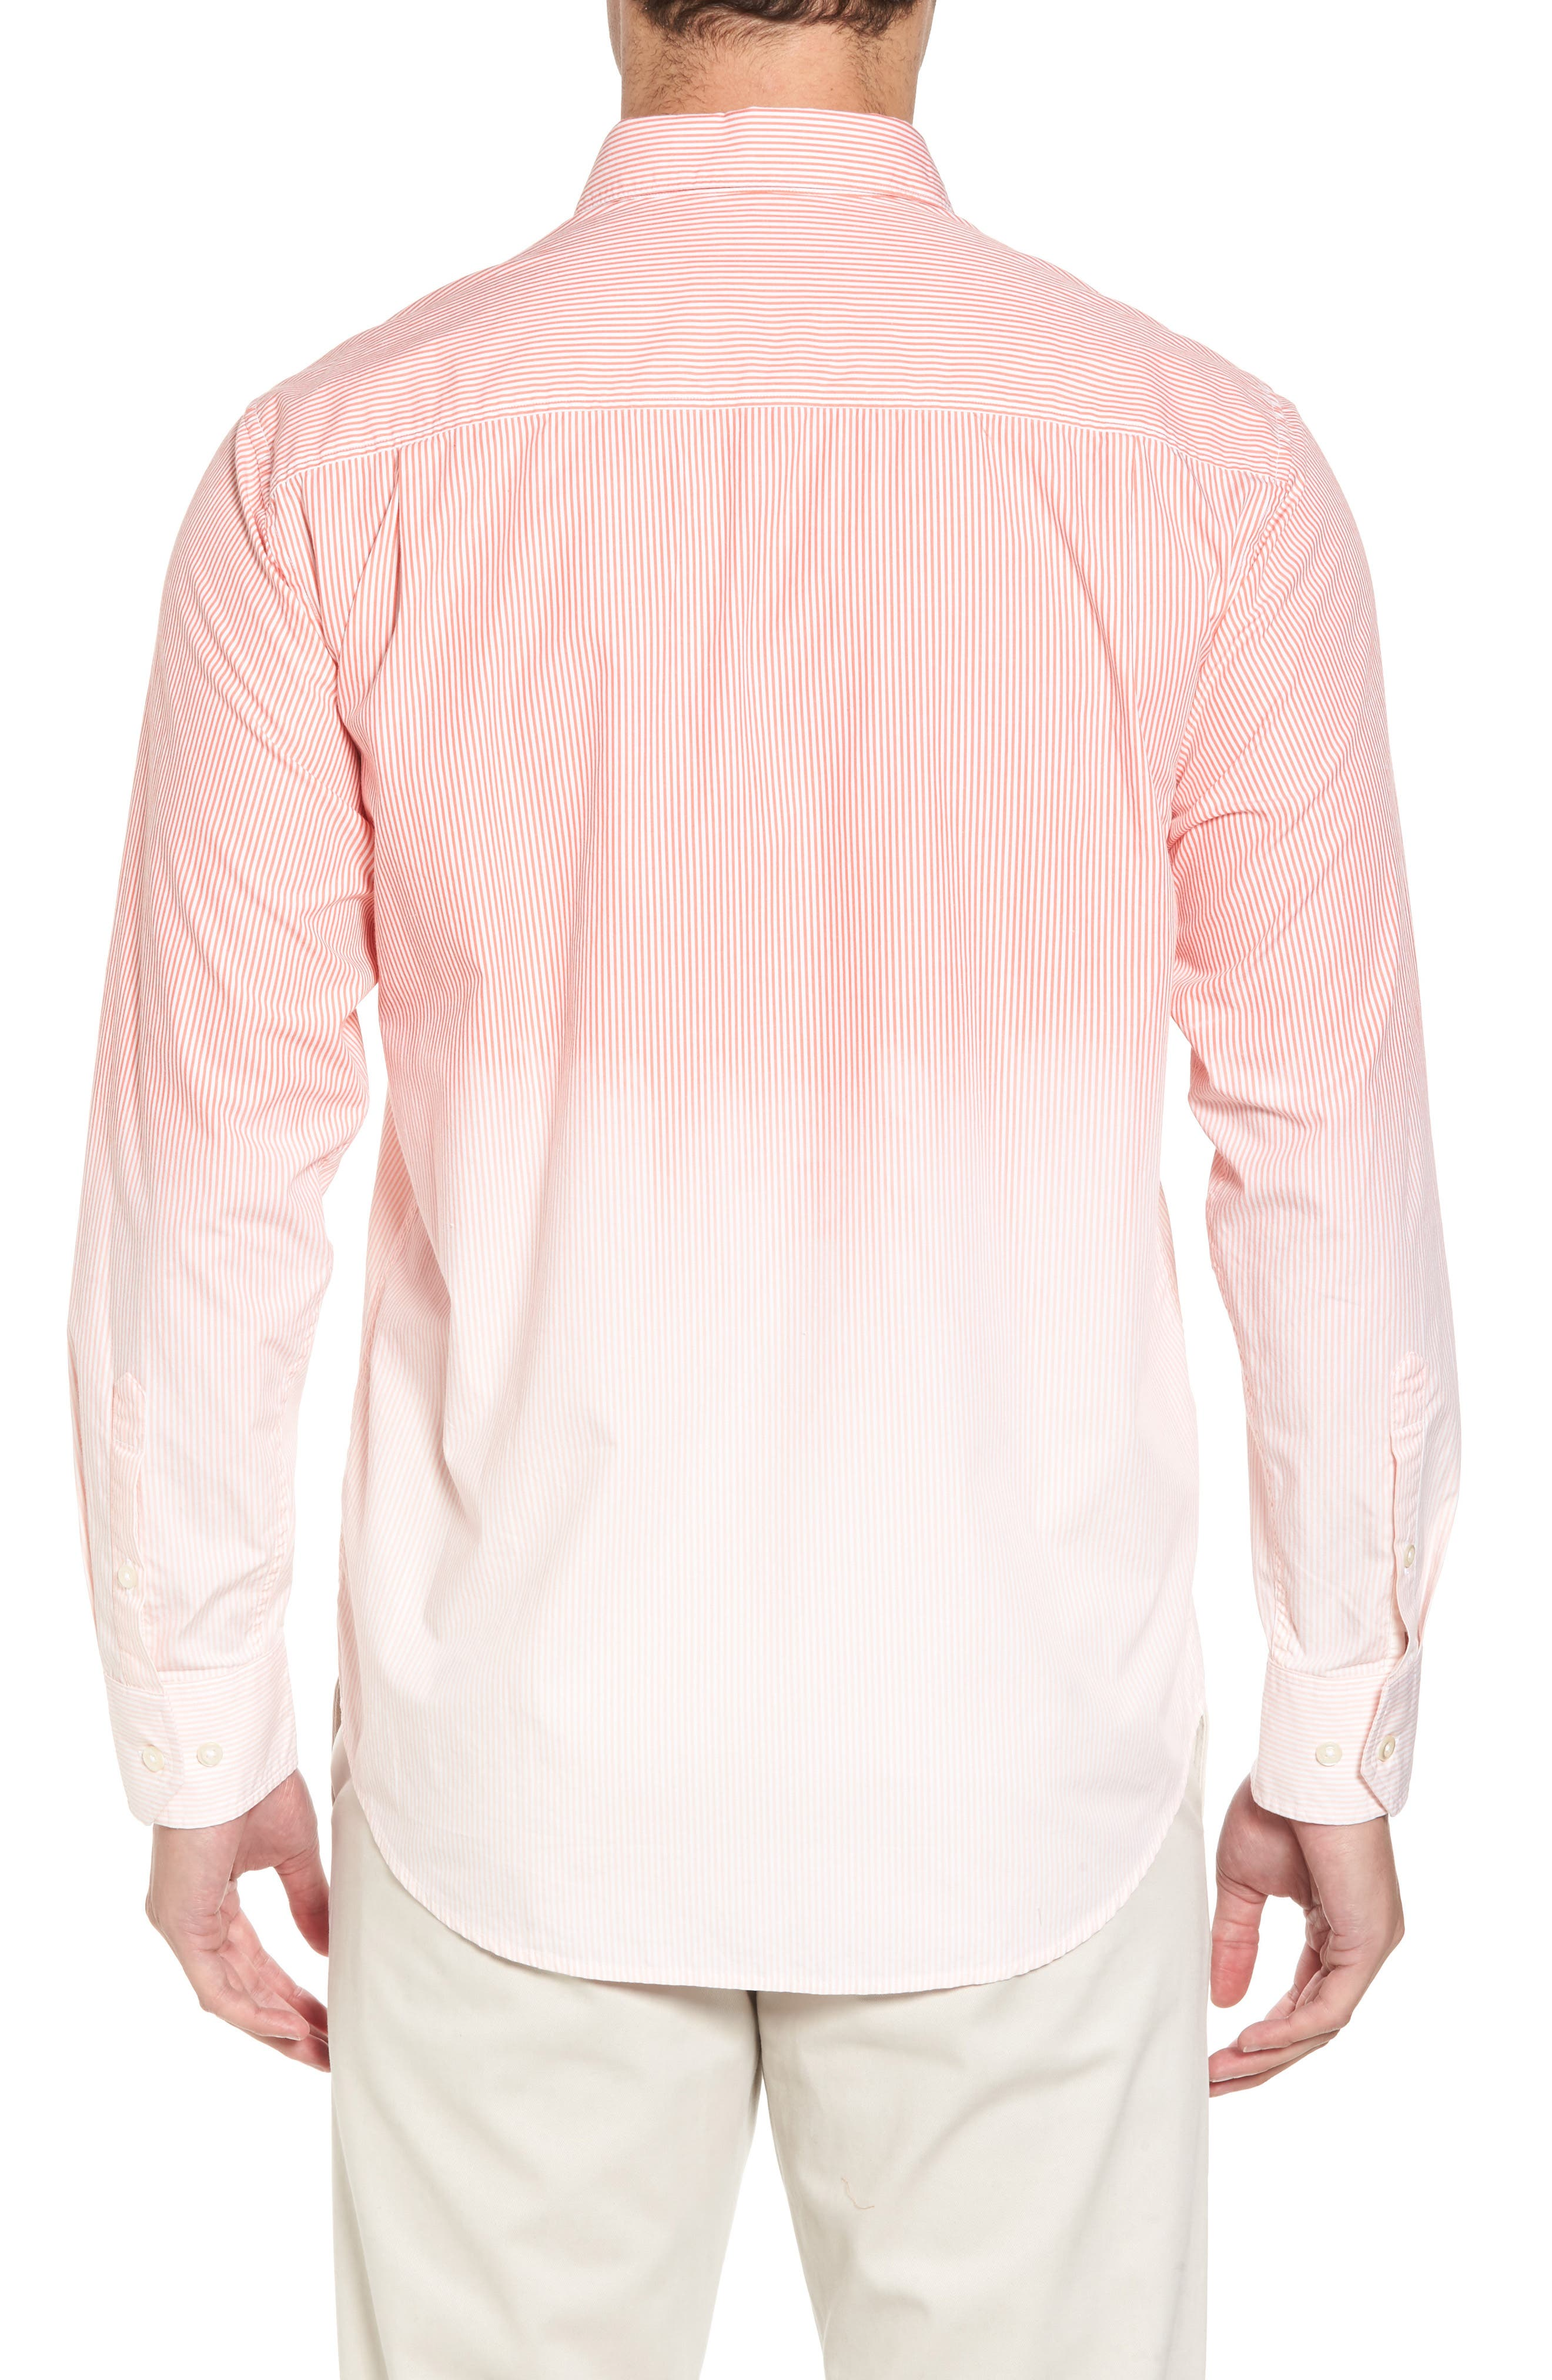 Fadeaway Beach Sport Shirt,                             Alternate thumbnail 2, color,                             950